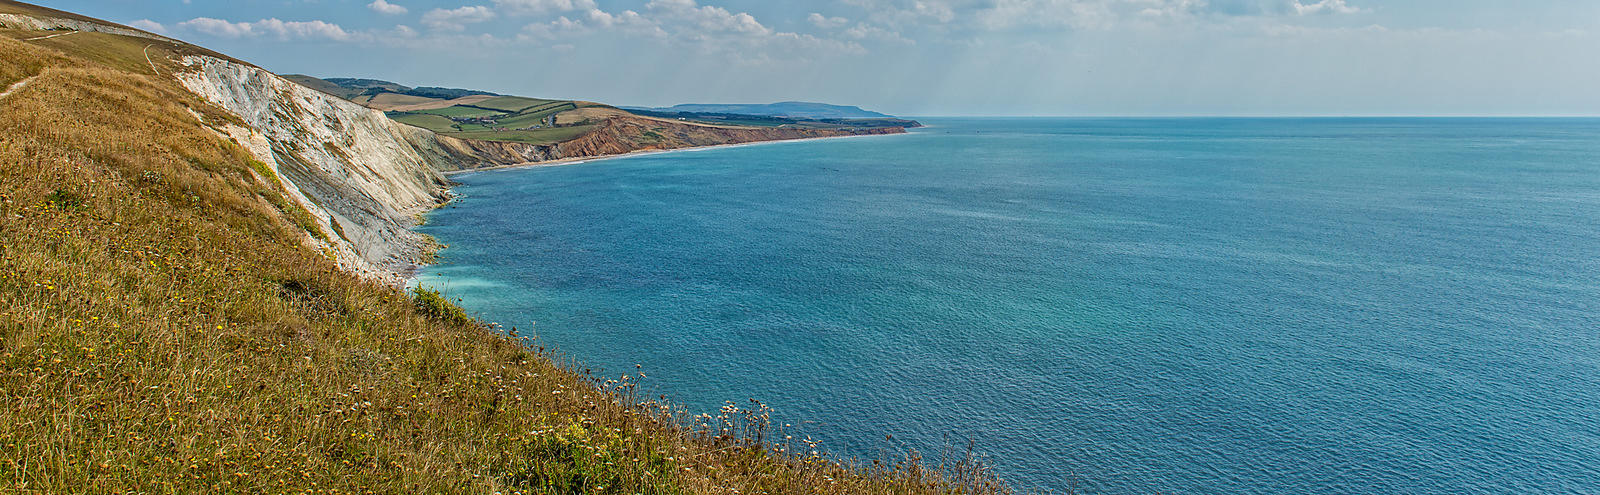 View of the Isle of Wight's south coastal landscape.